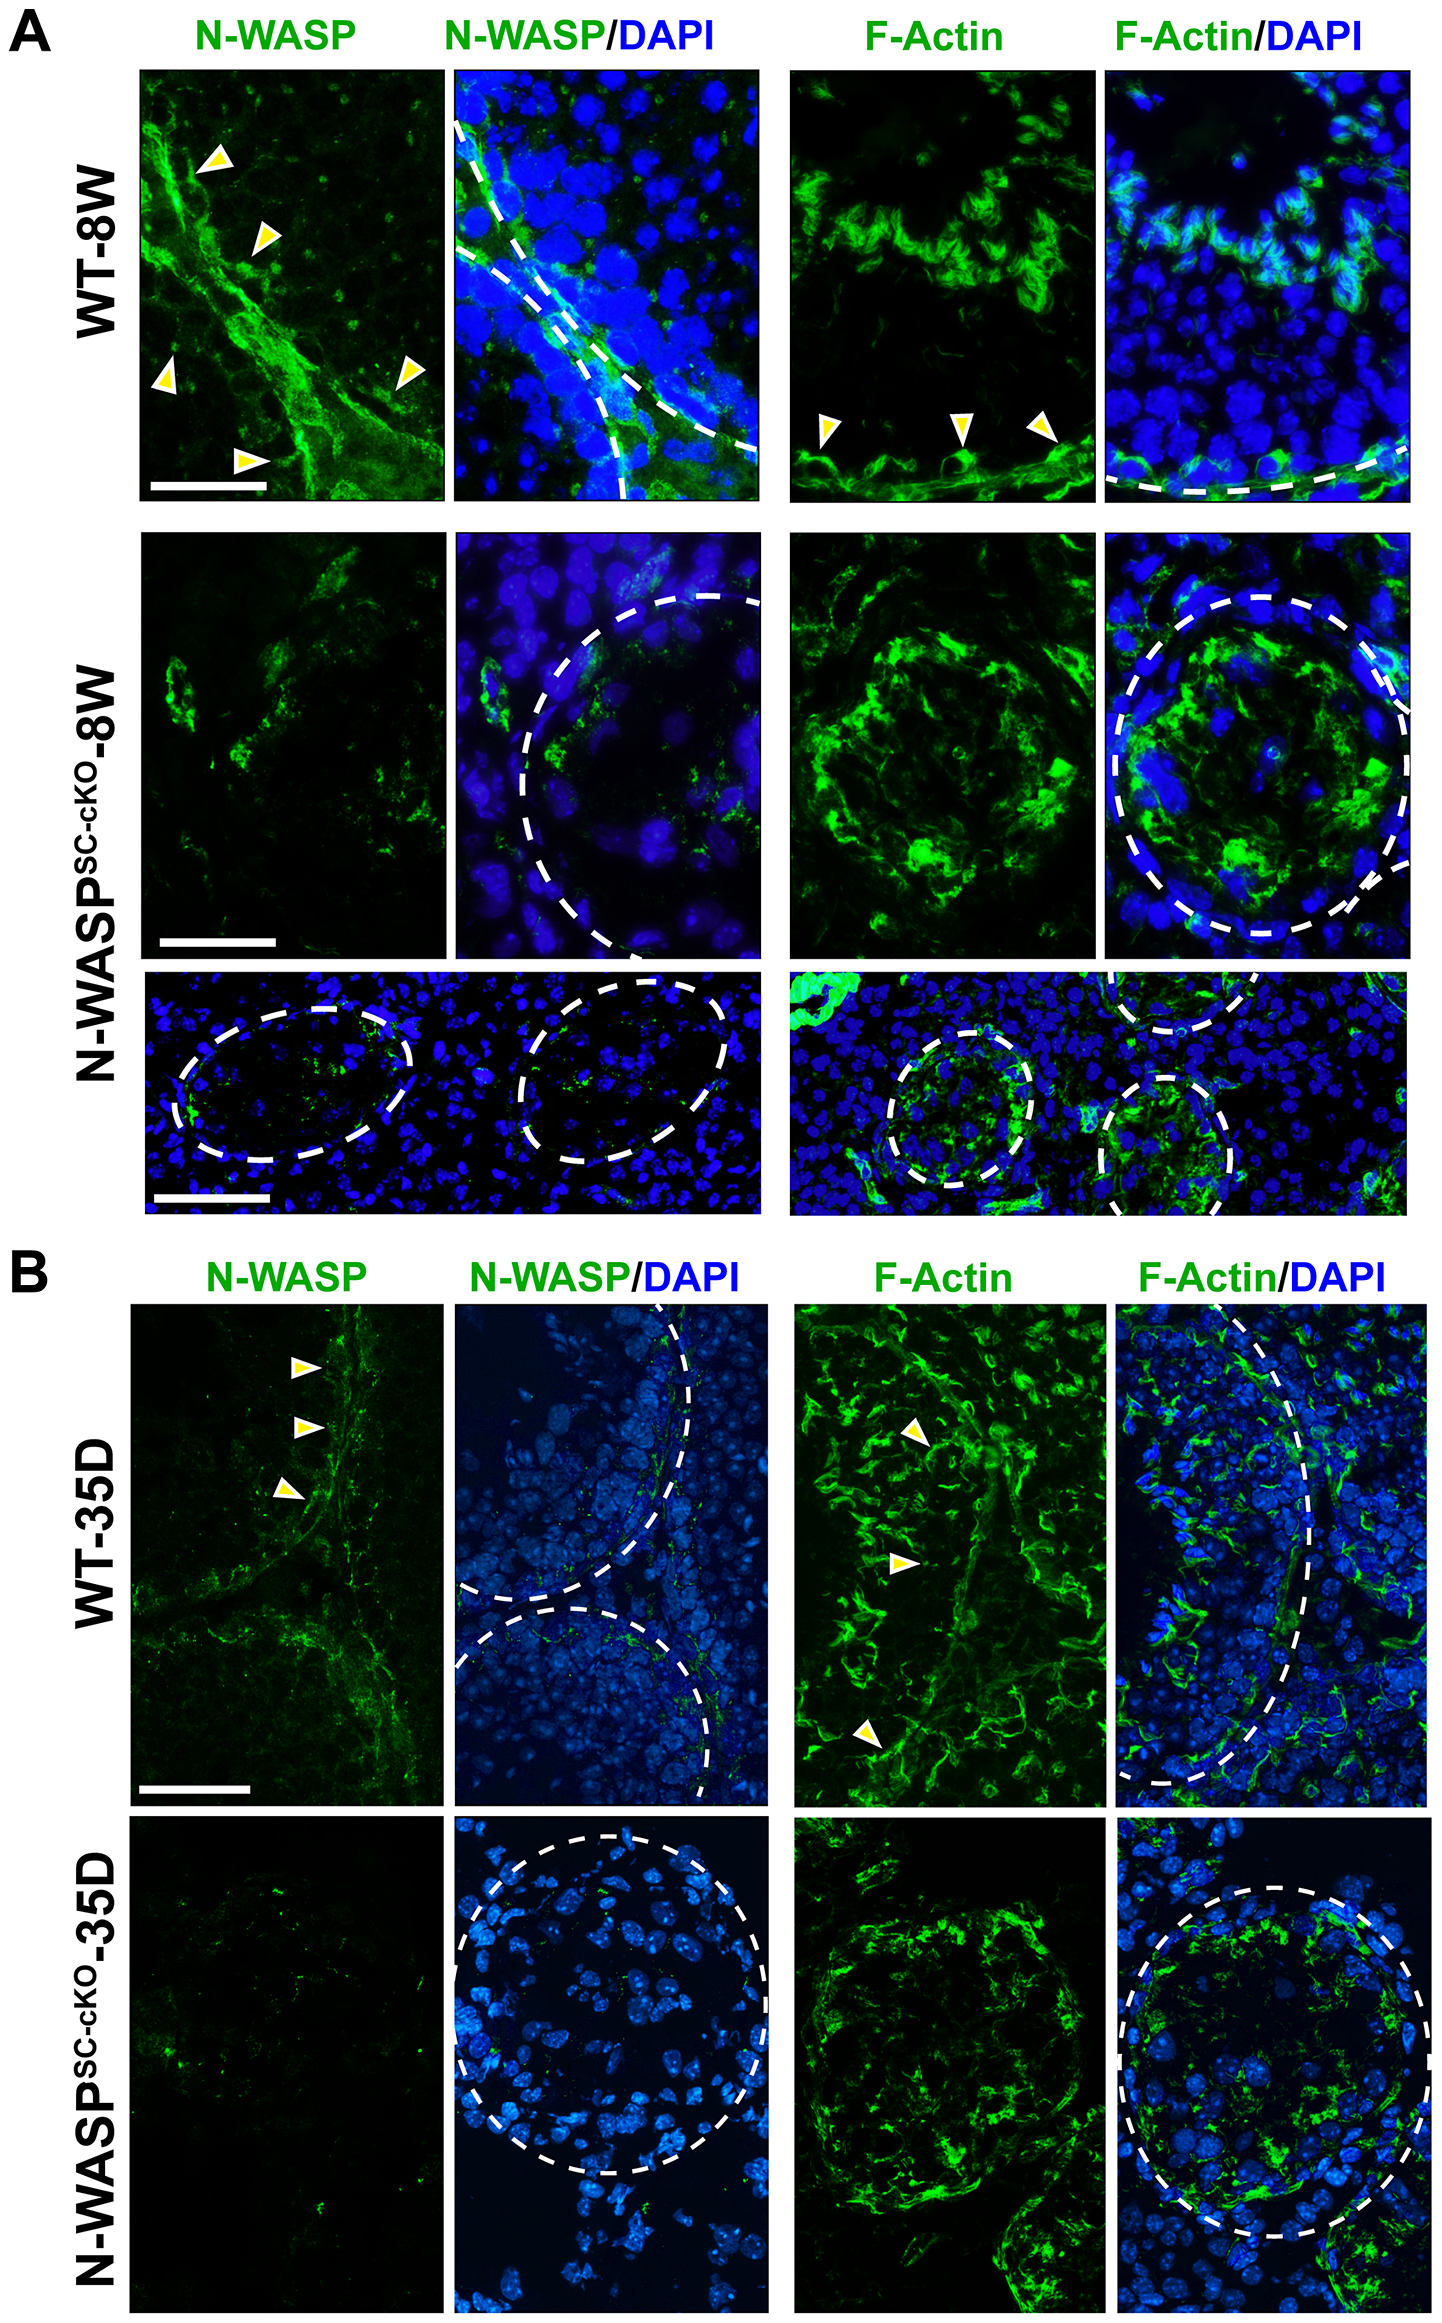 Sertoli cell-specific knockout of N-WASP leads to disorganization of F-actin in the seminiferous epithelium.